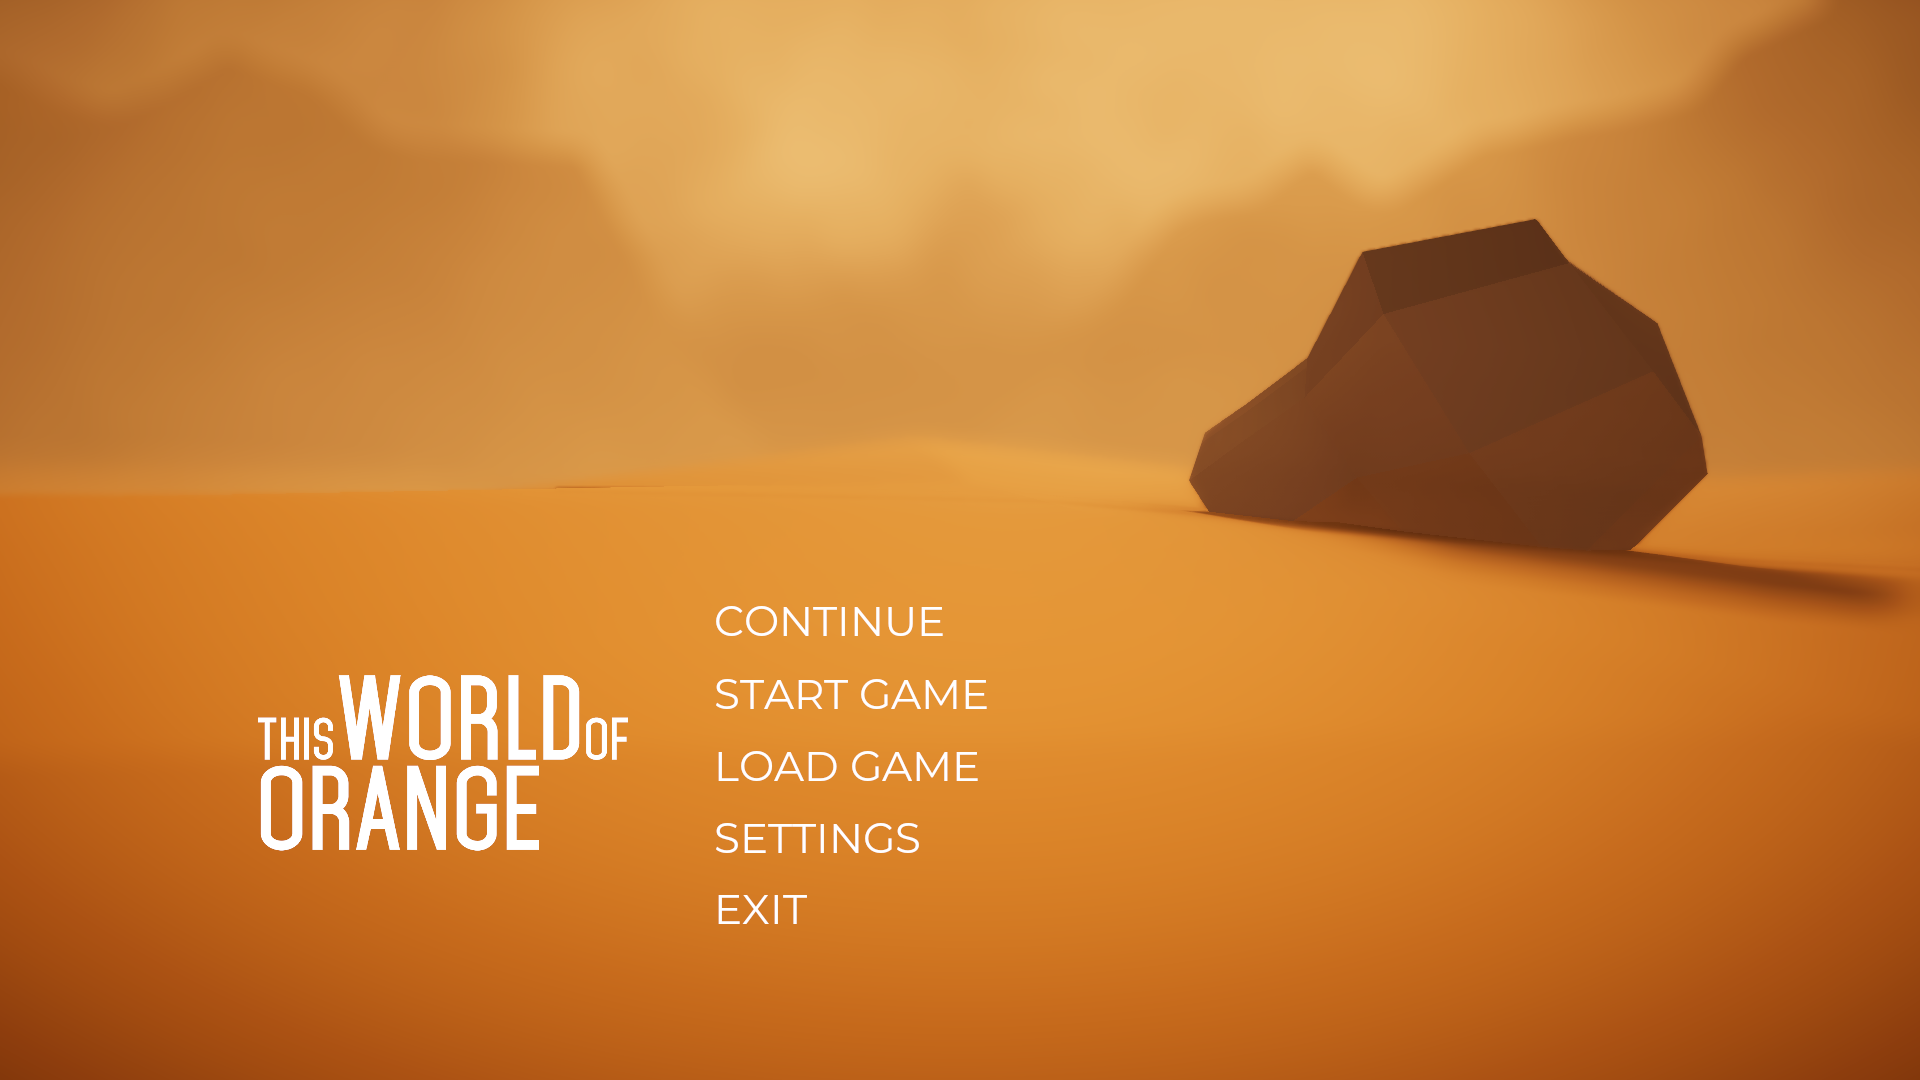 Main Menu Design & Animation | This World of Orange